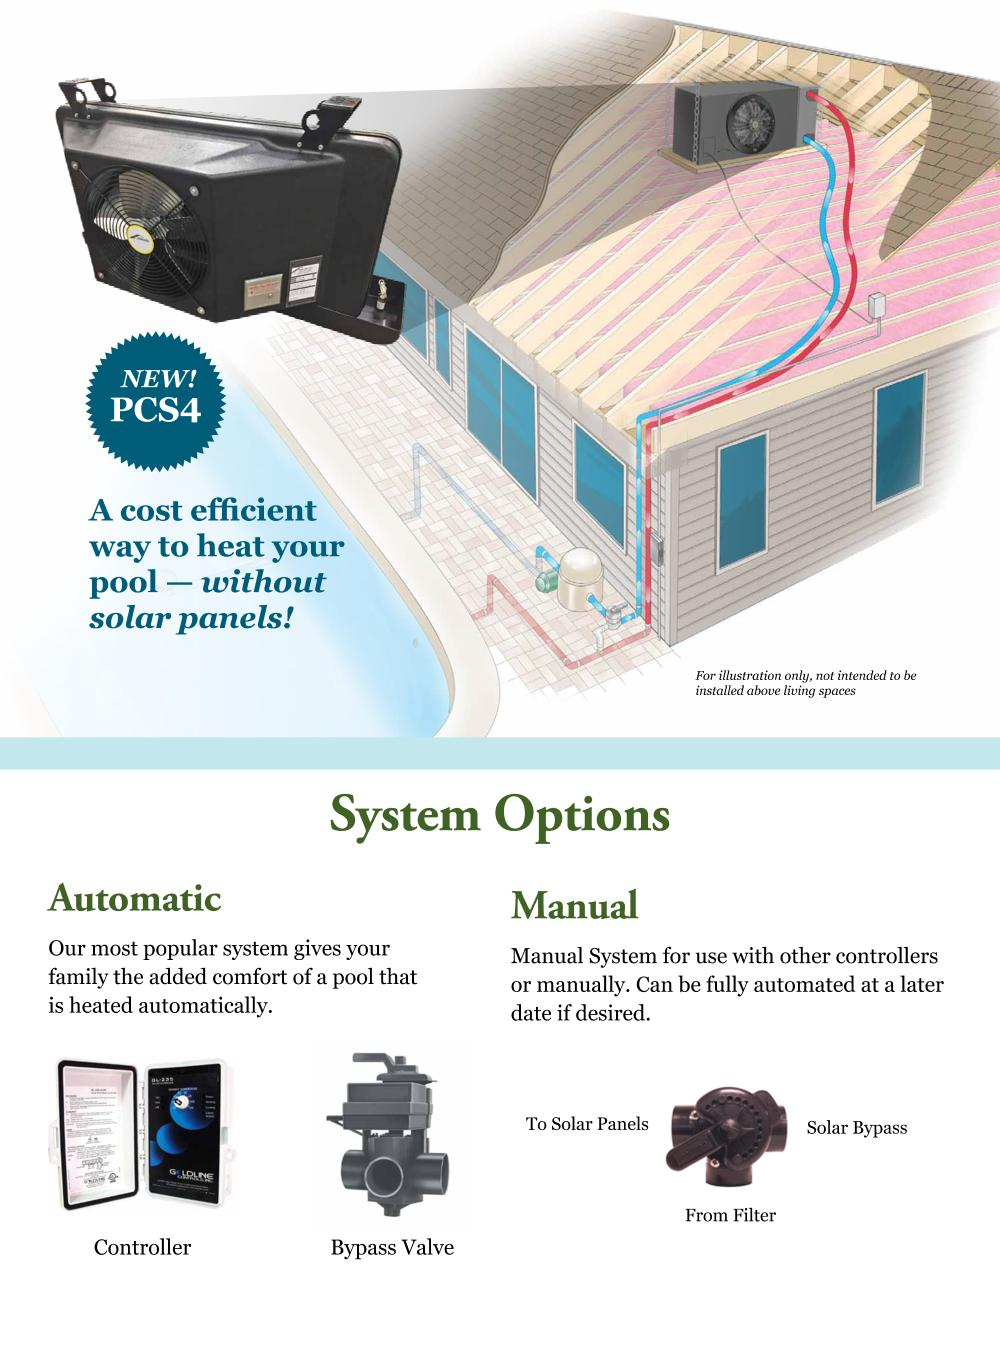 SolarAttic System Options Graphic Image